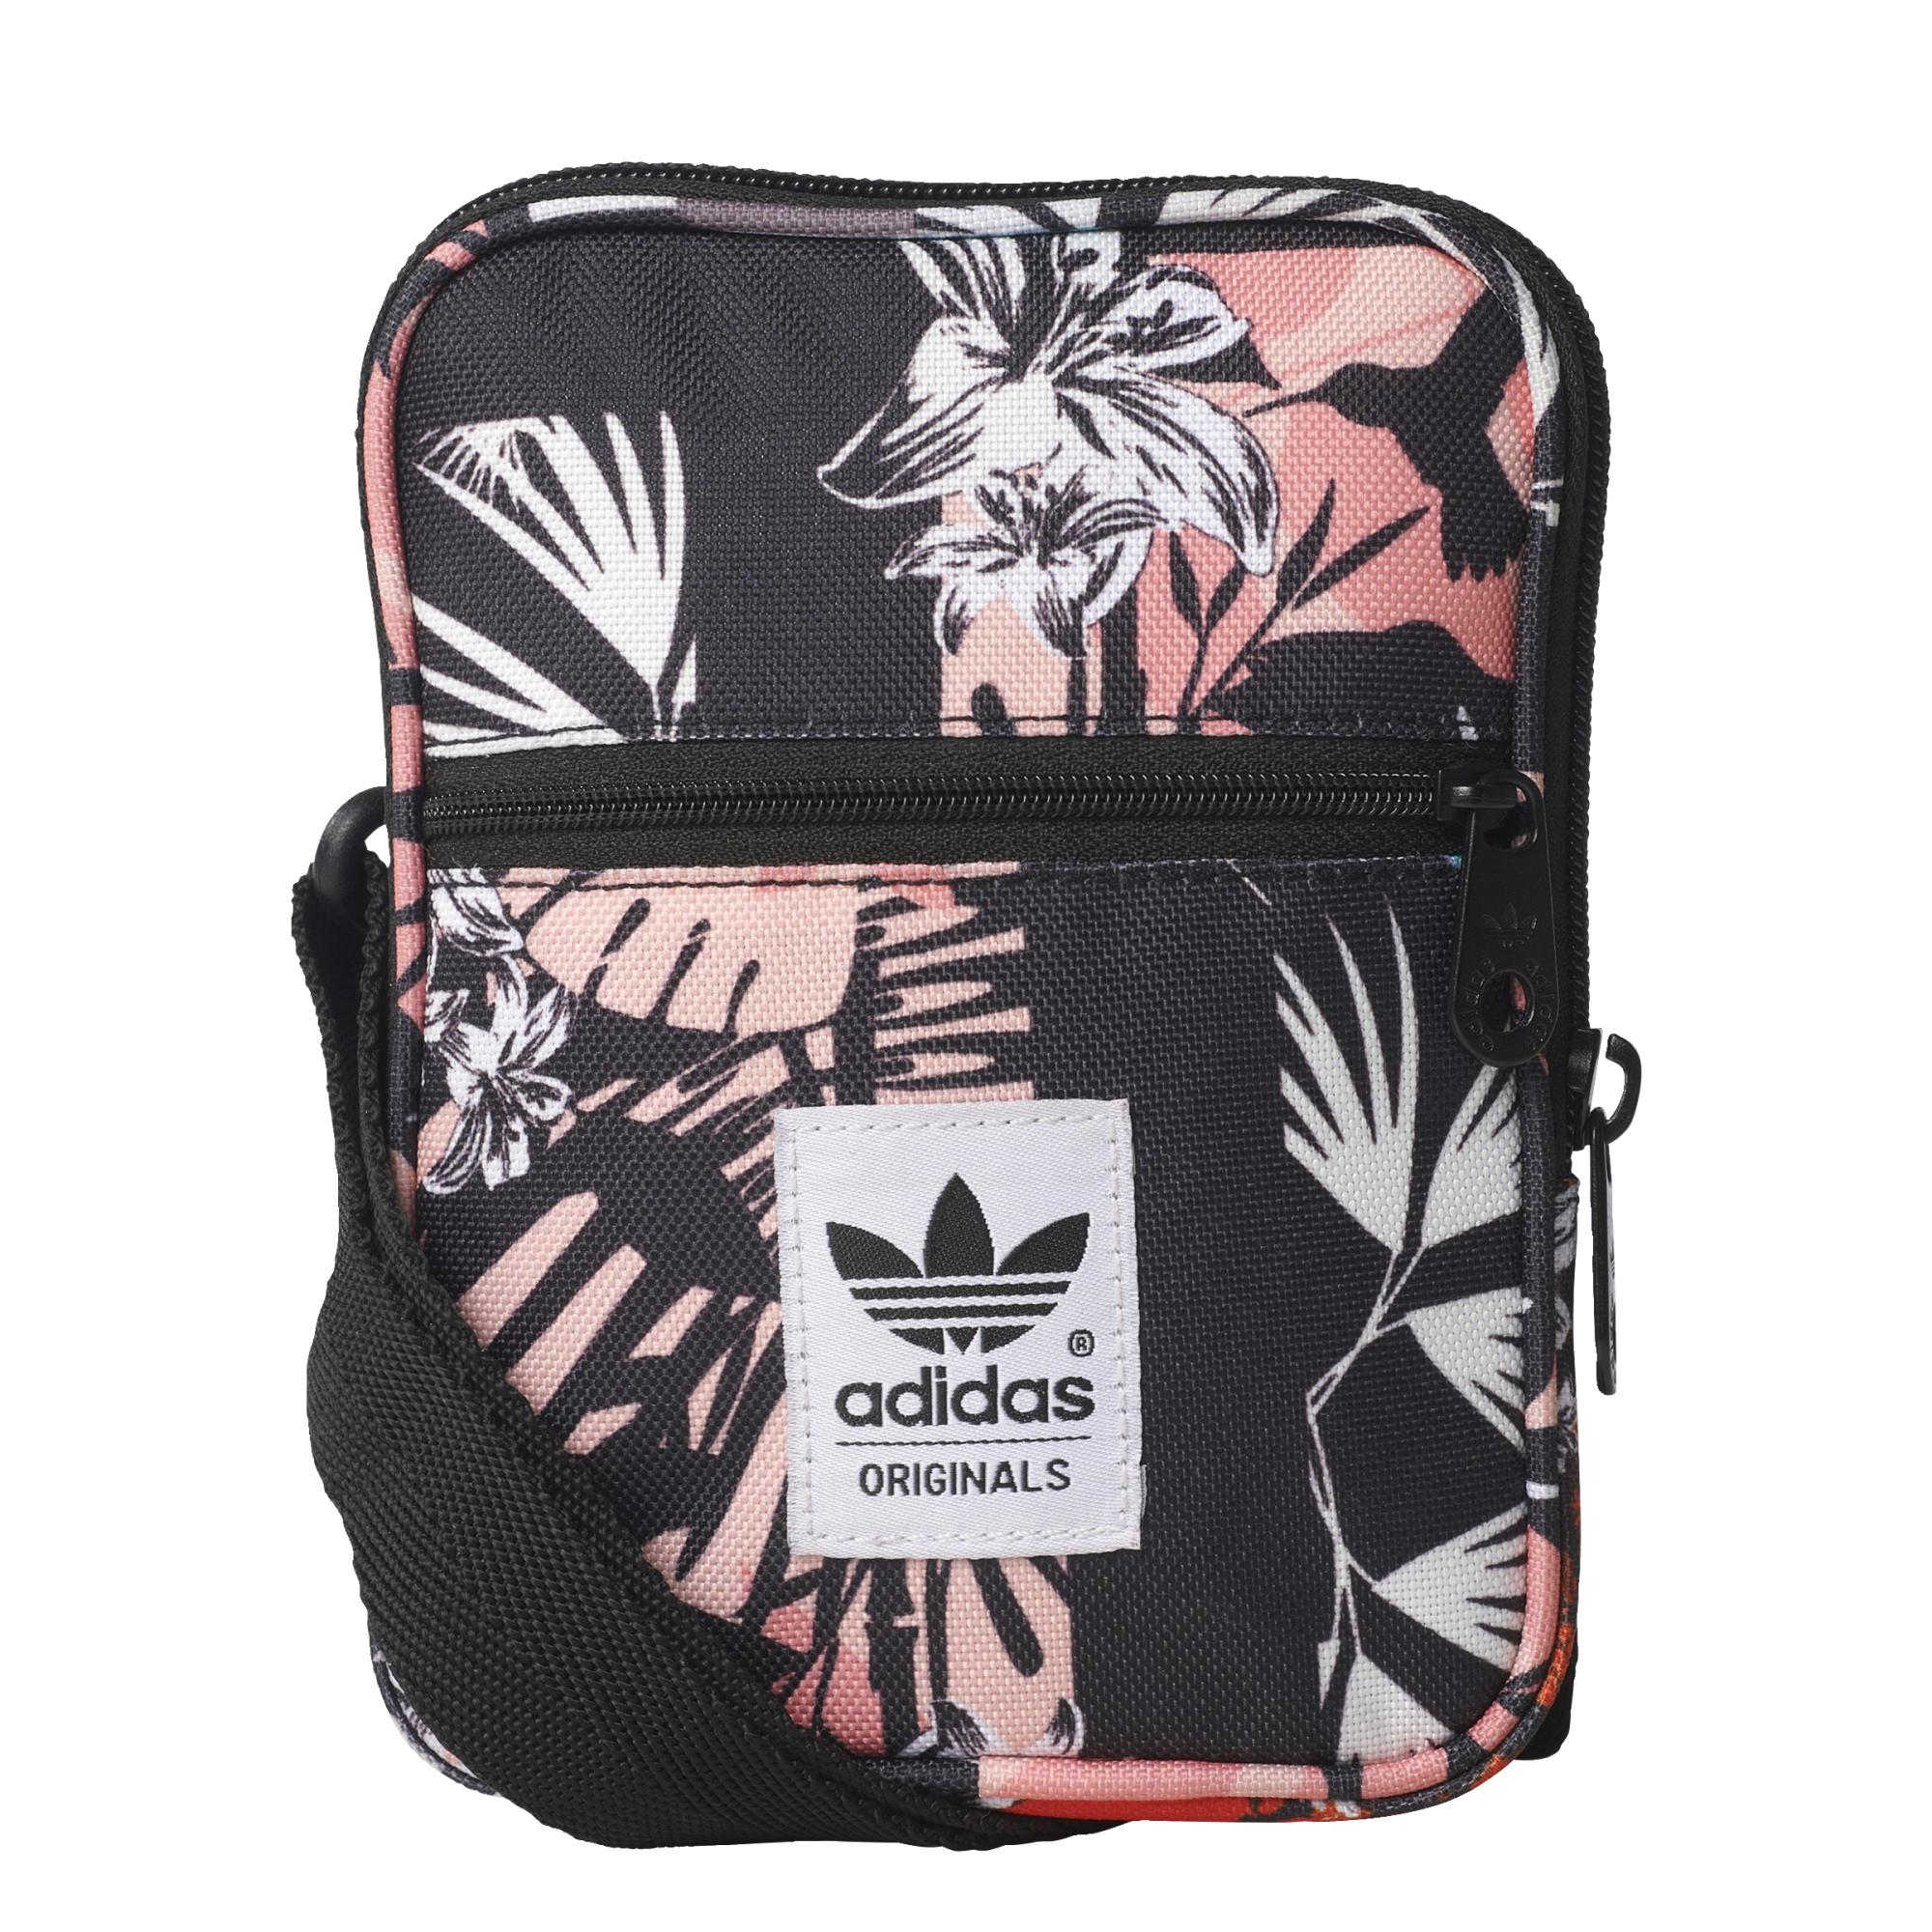 8f3e35f21589 Adidas Originals Mini Bag Festival Soccer Tropic (multicolor)